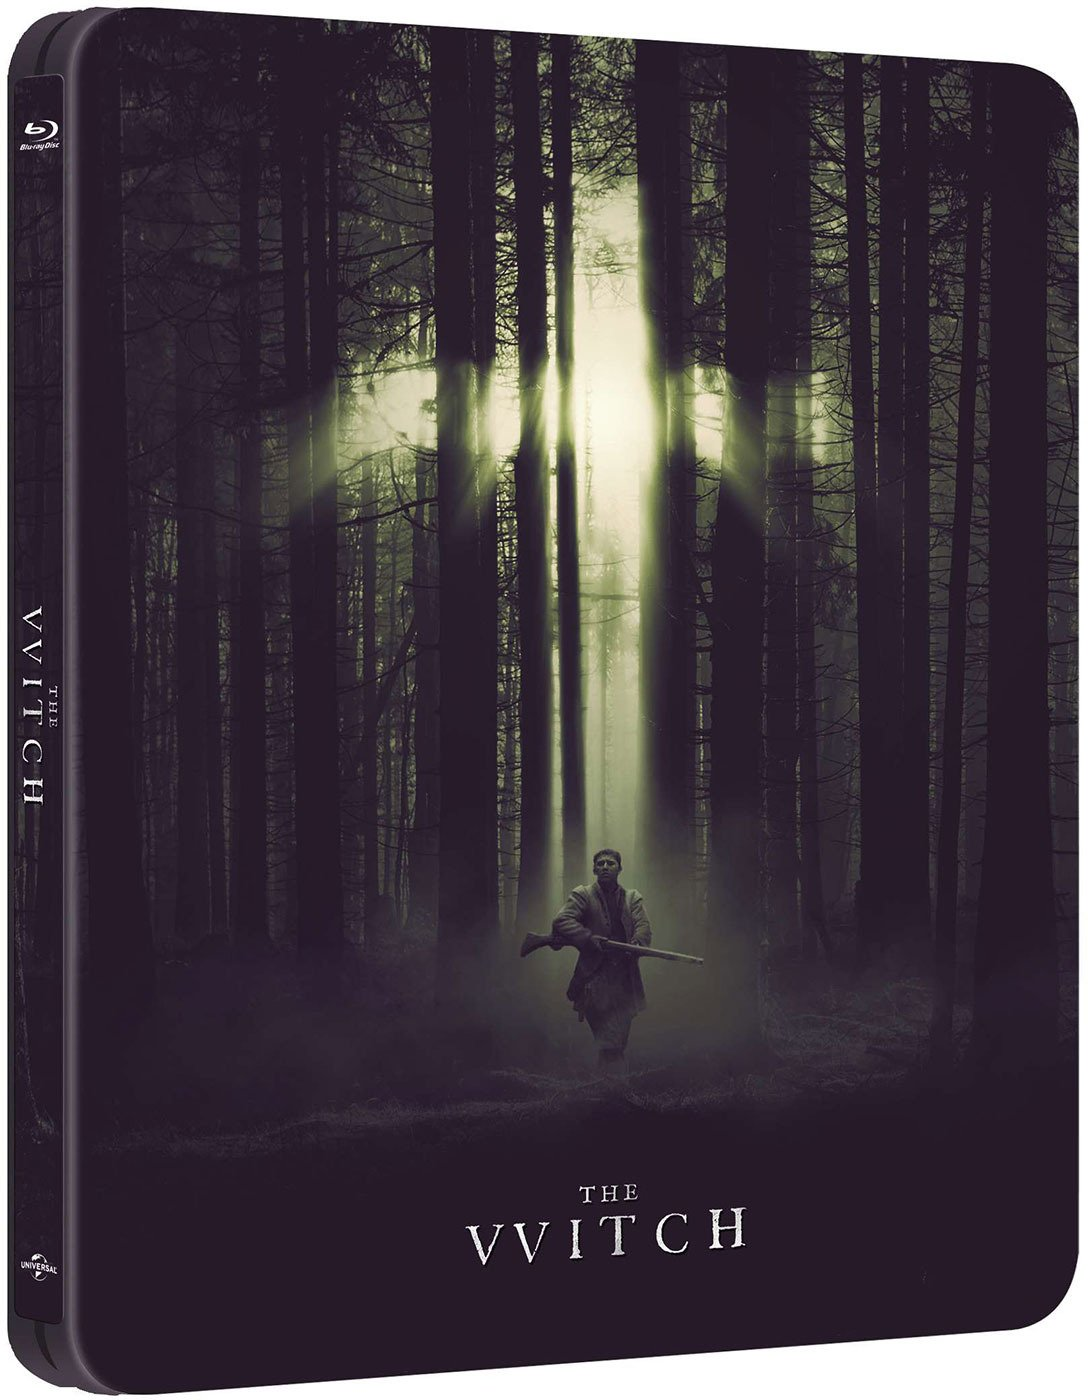 The Witch (The VVitch: A New-England Folktale) 7139pGYBhfL._SL1400_